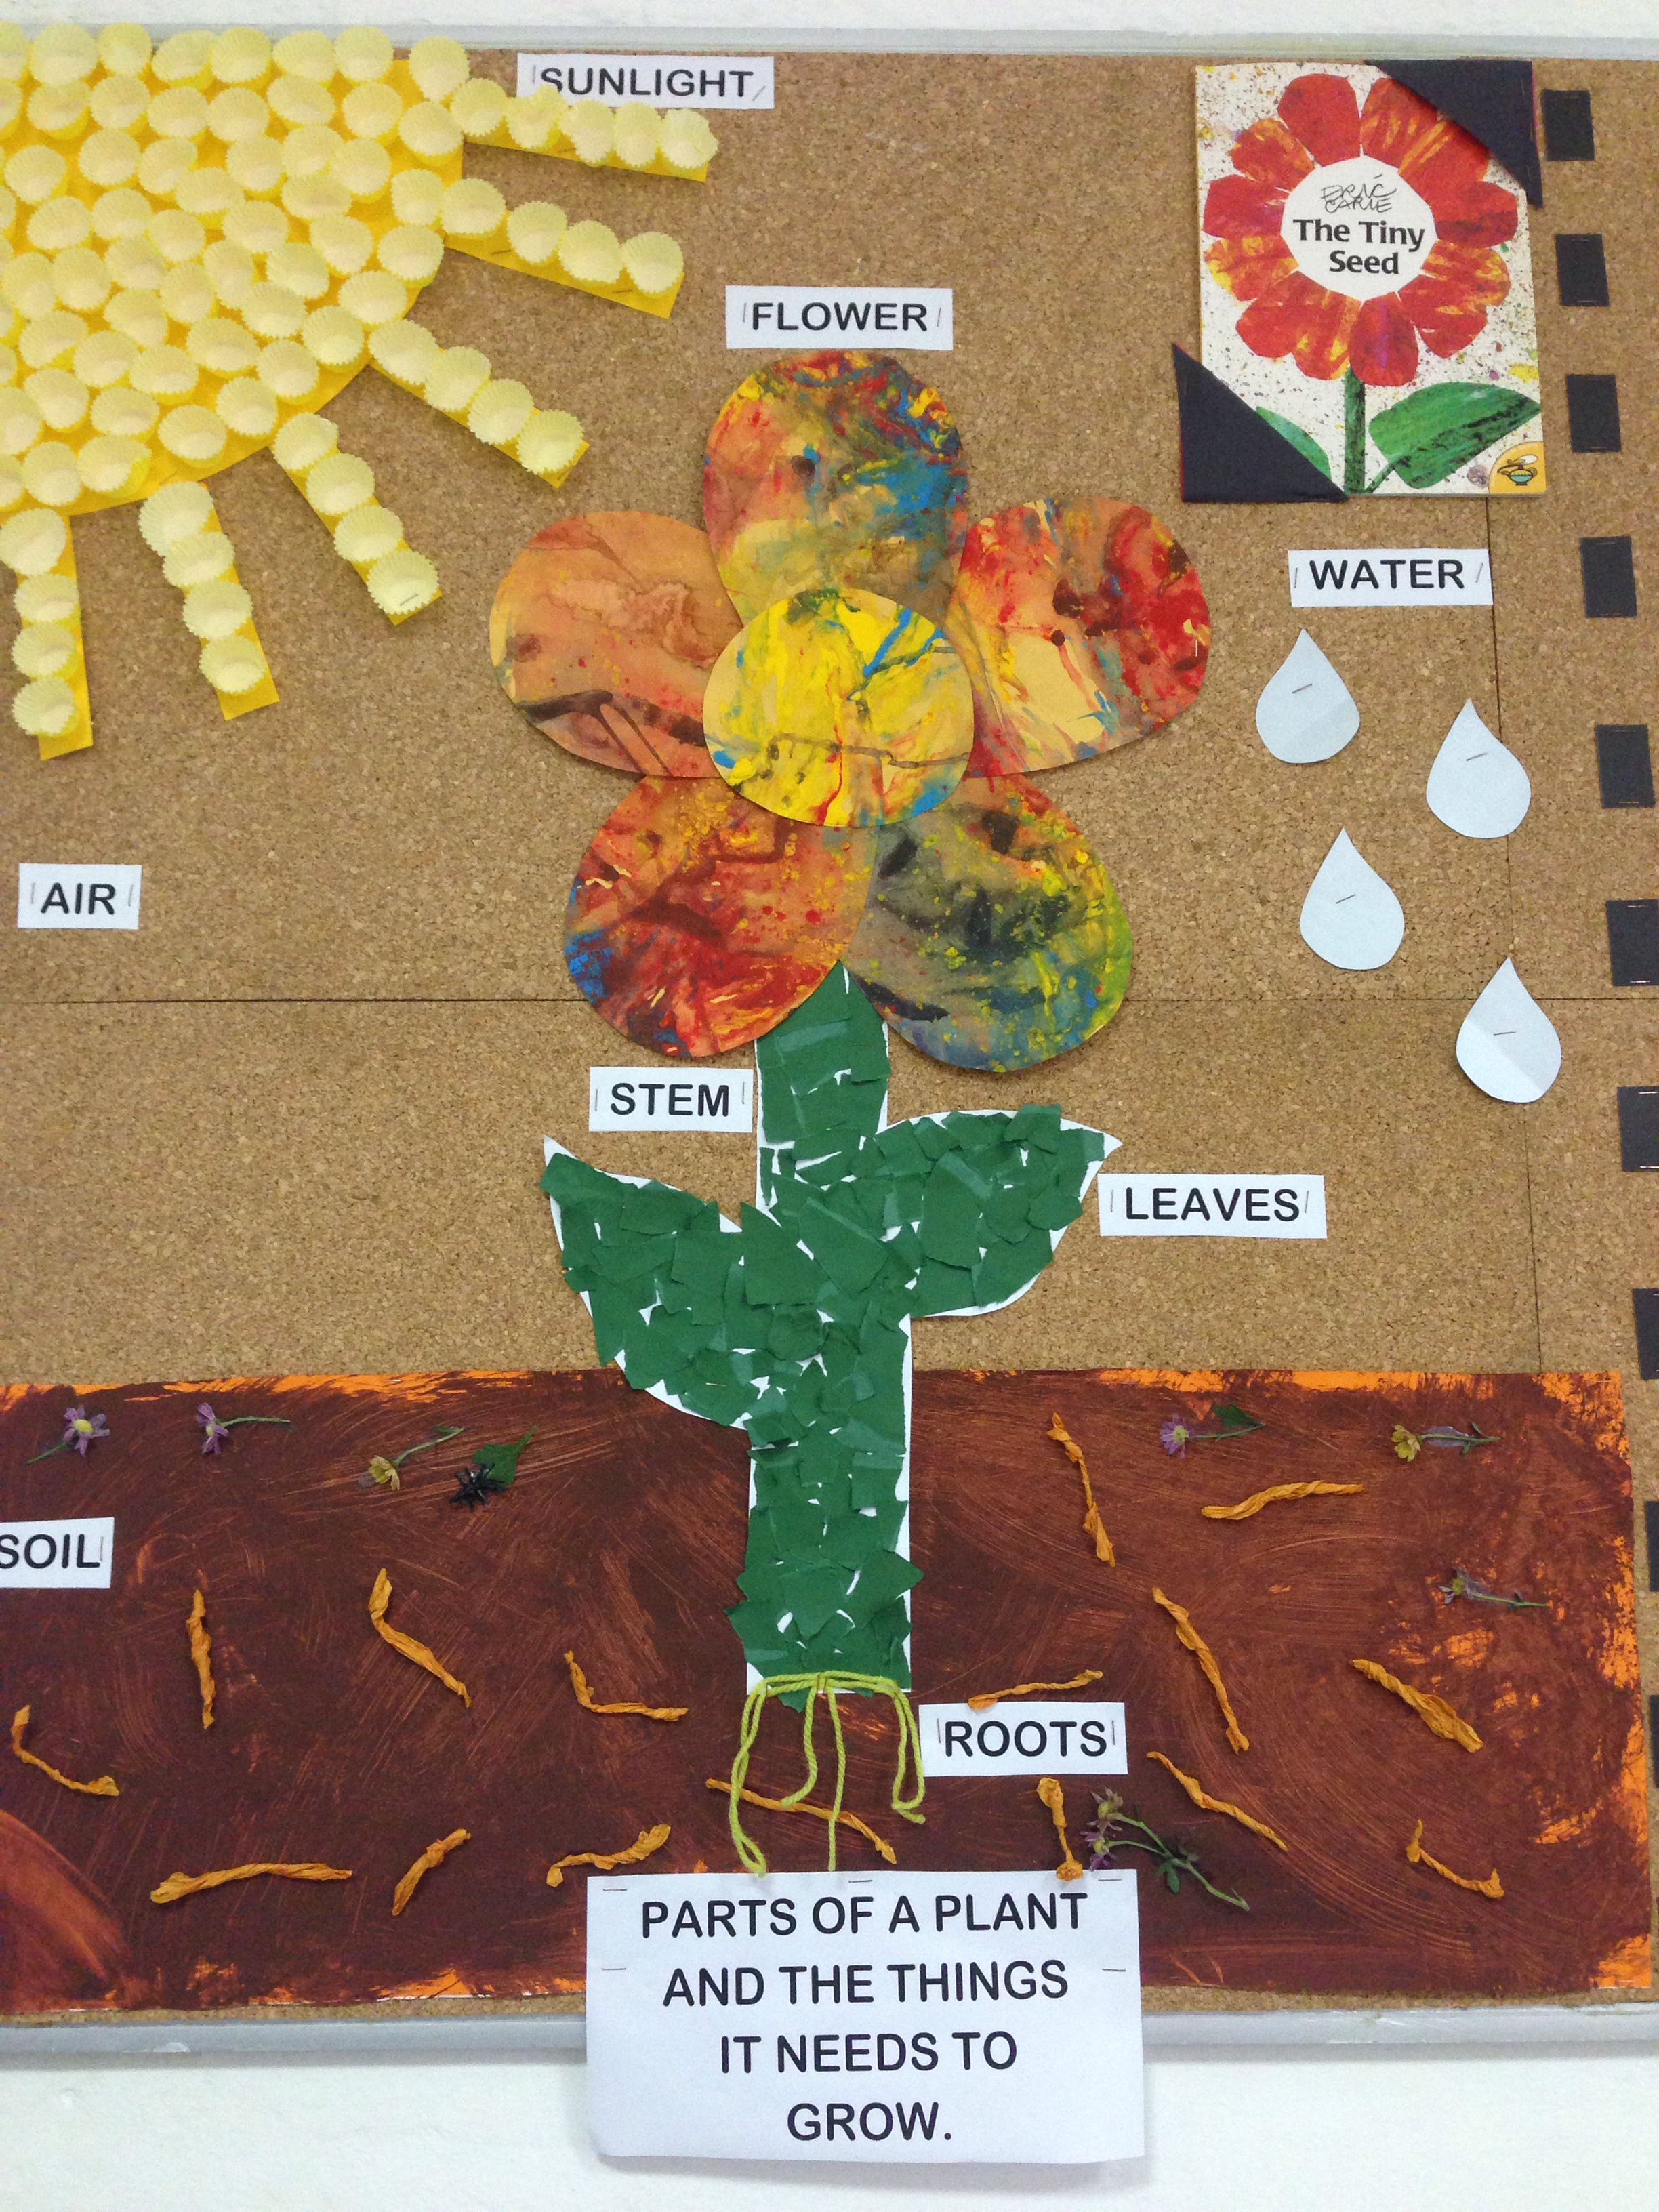 Parts Of A Plant Based On The Book The Tiny Seed With